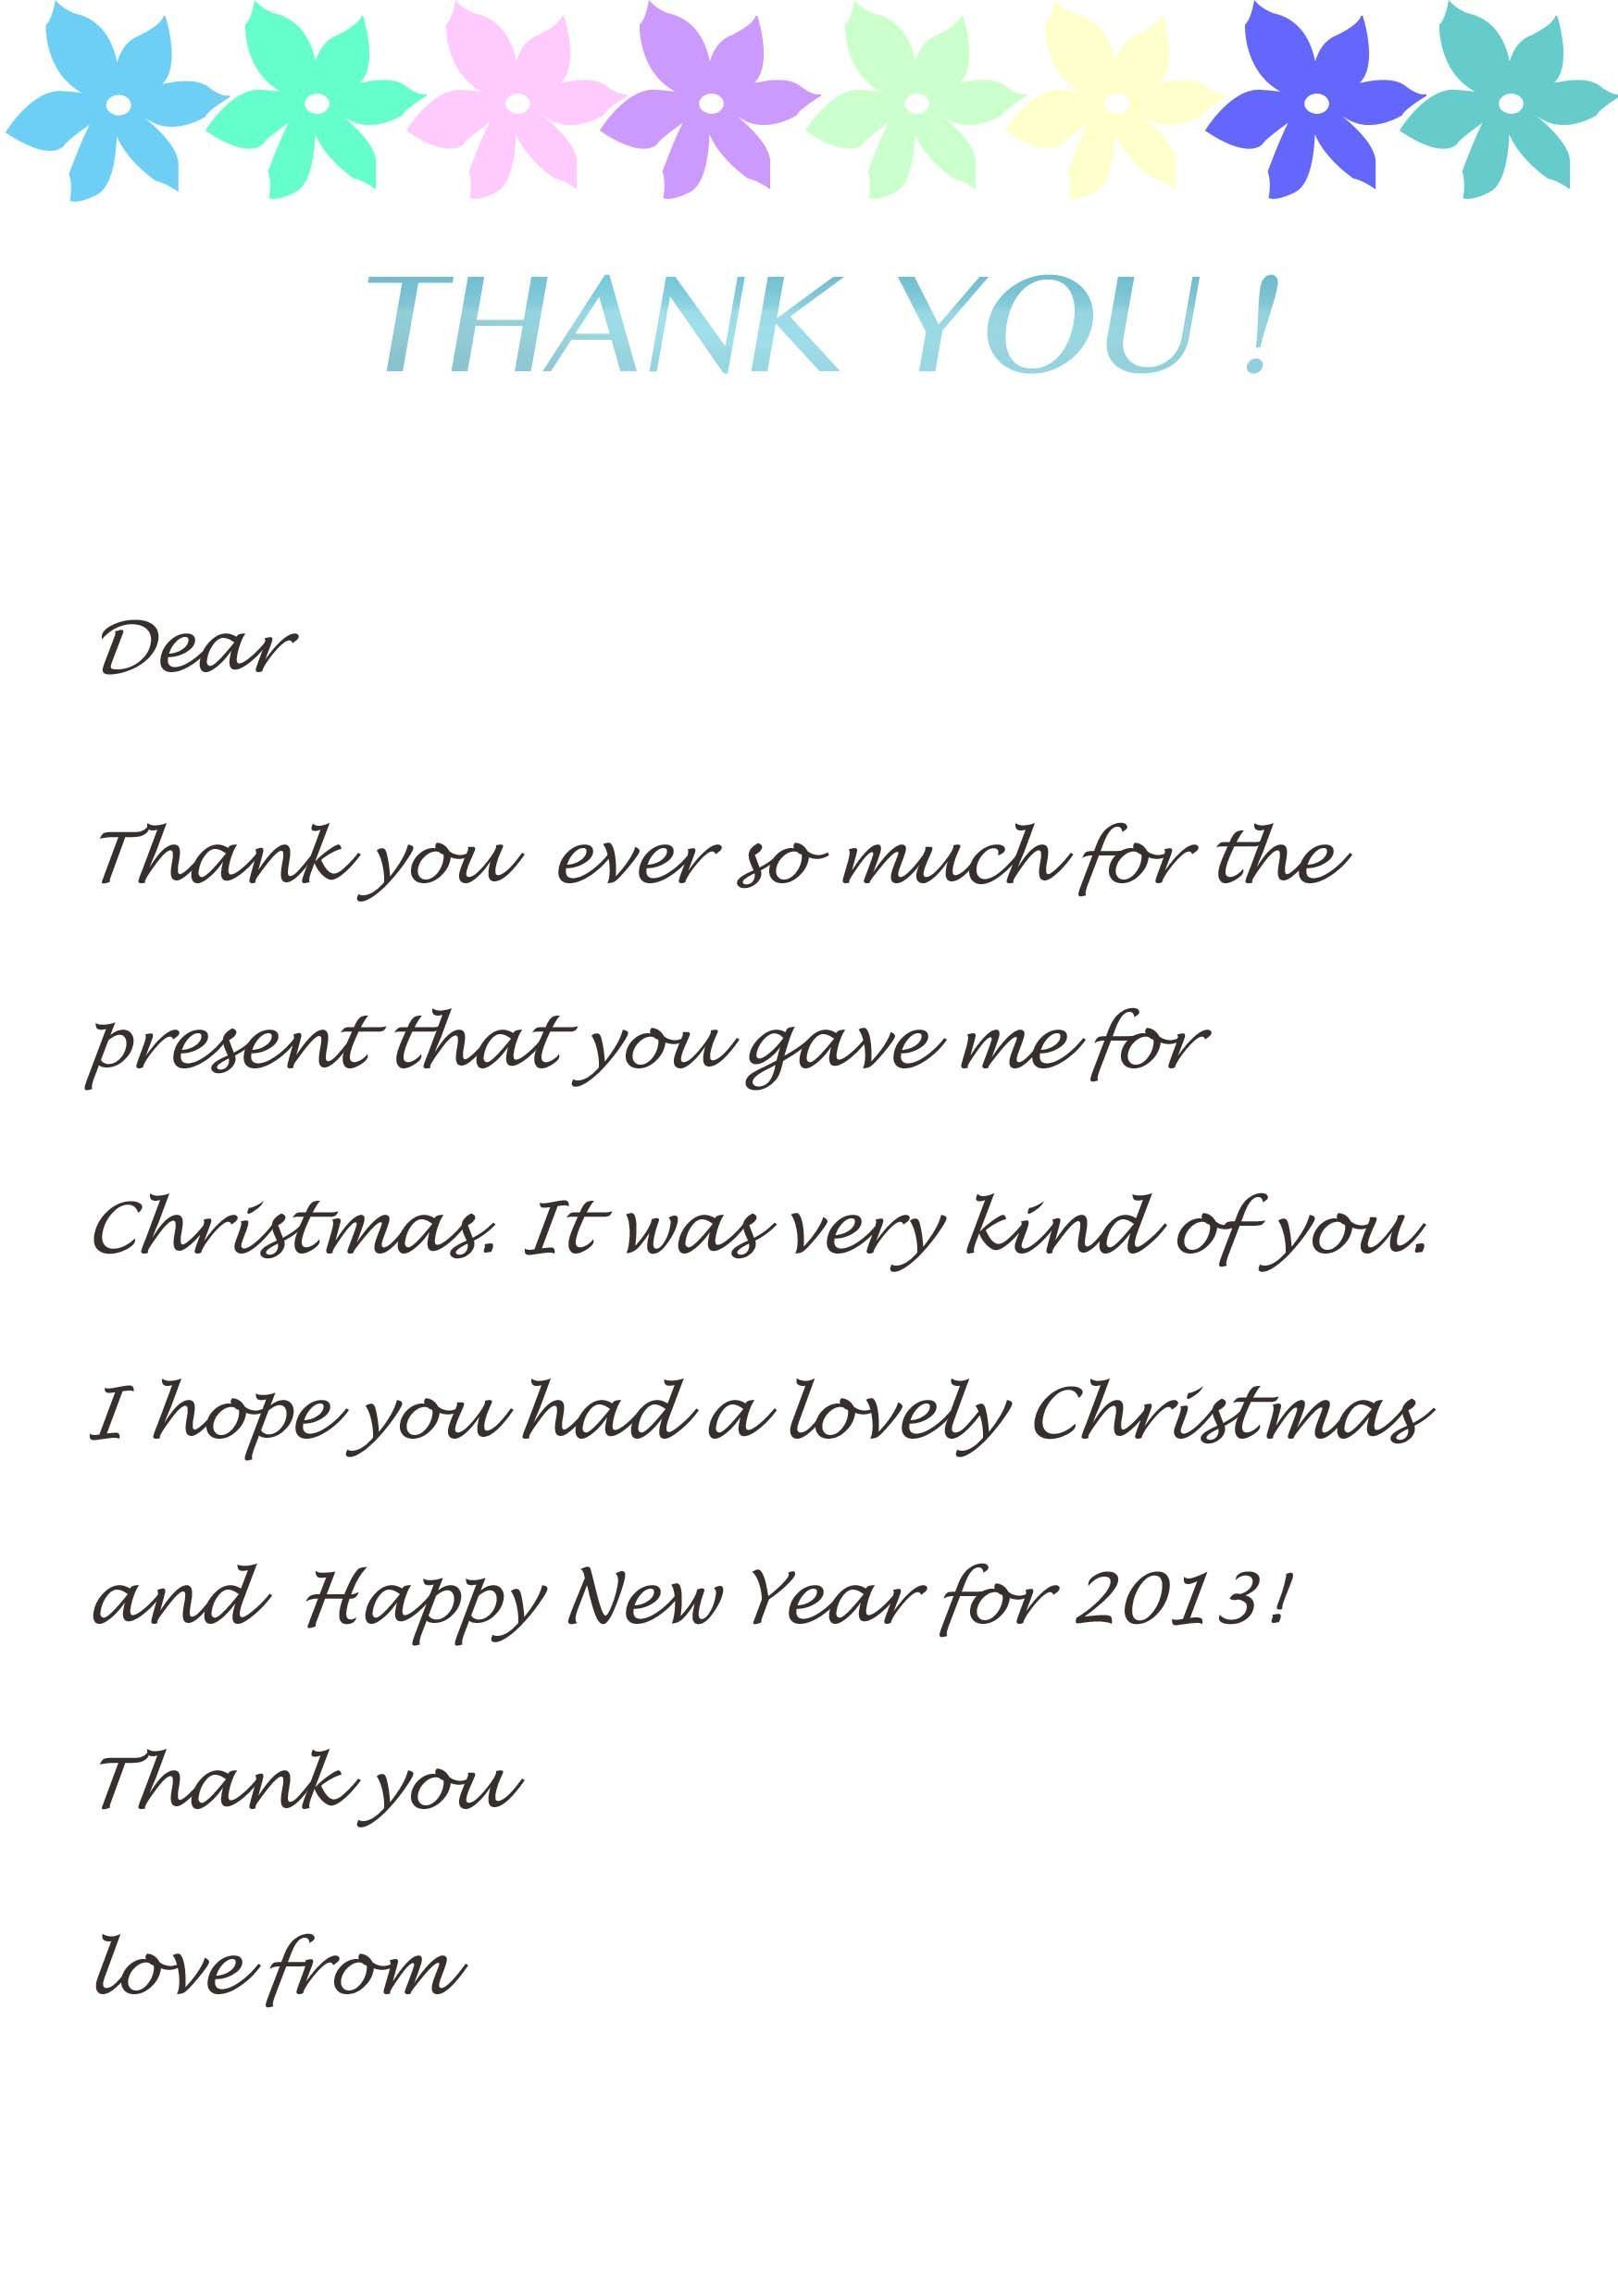 Thank you letter template for kids christmas fun pinterest thank you letter template for kids spiritdancerdesigns Choice Image